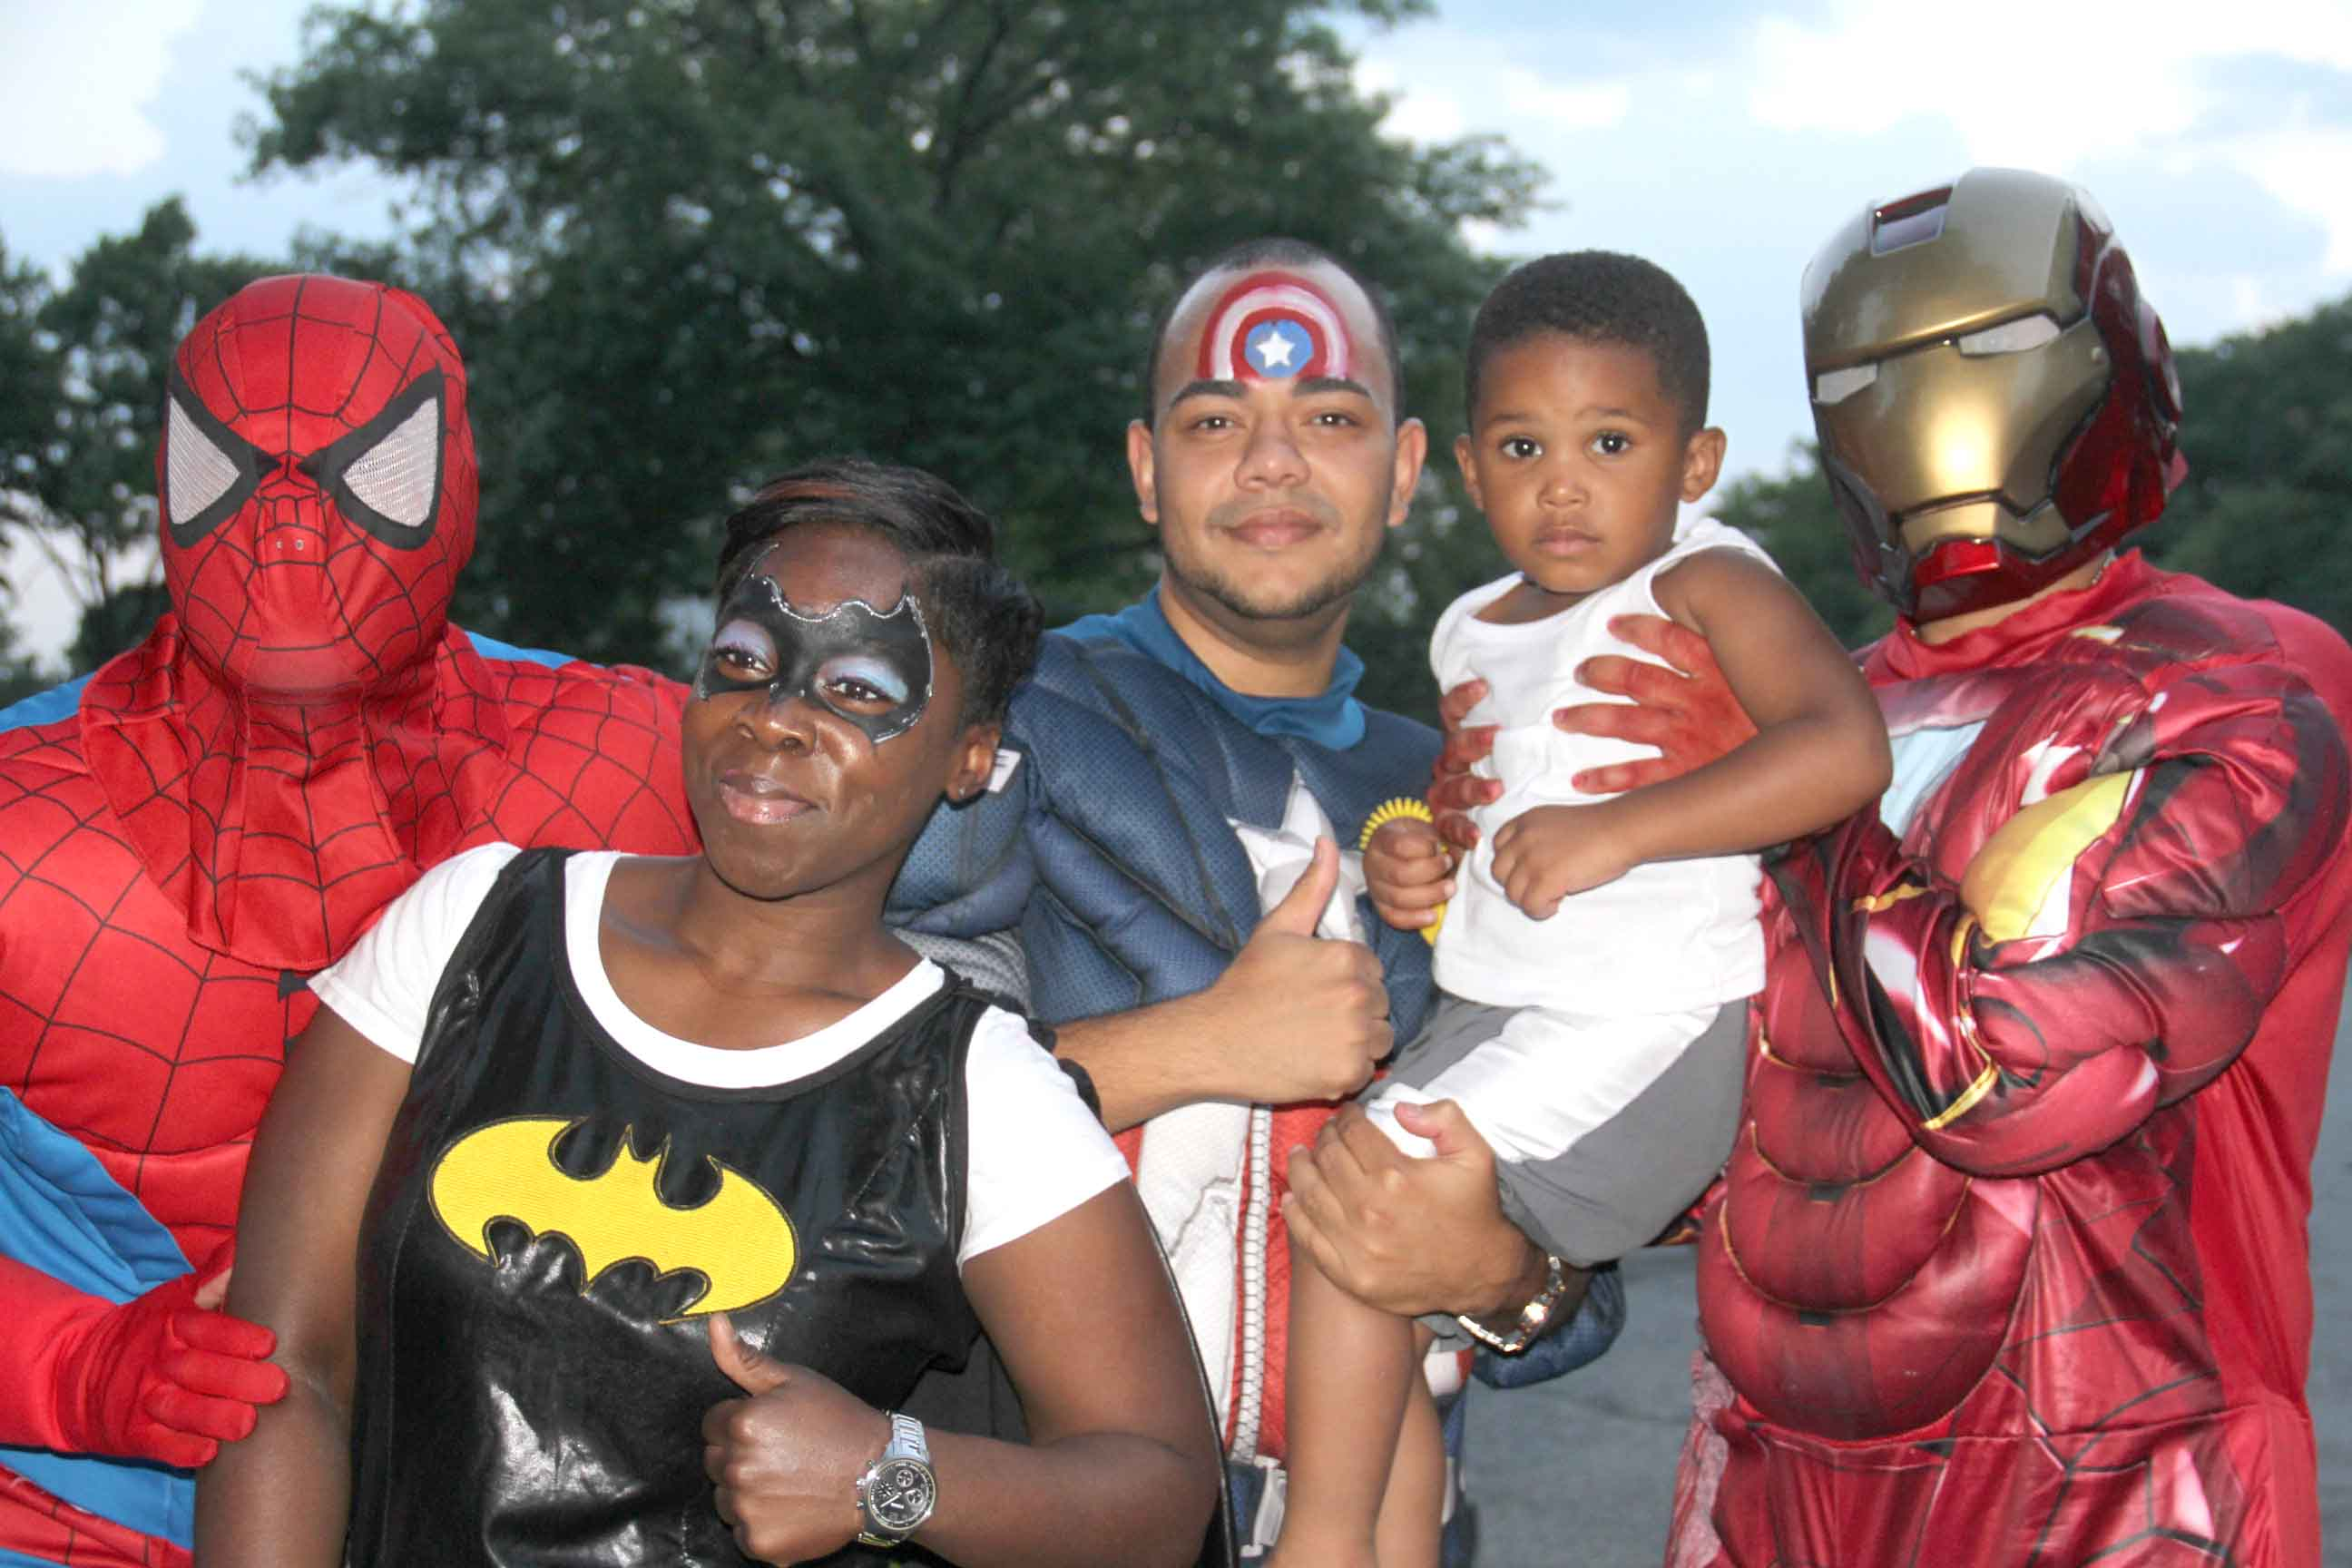 Police officers decked in superhero outfits join kids at National Night Out Against Crime. Photo by David Greene